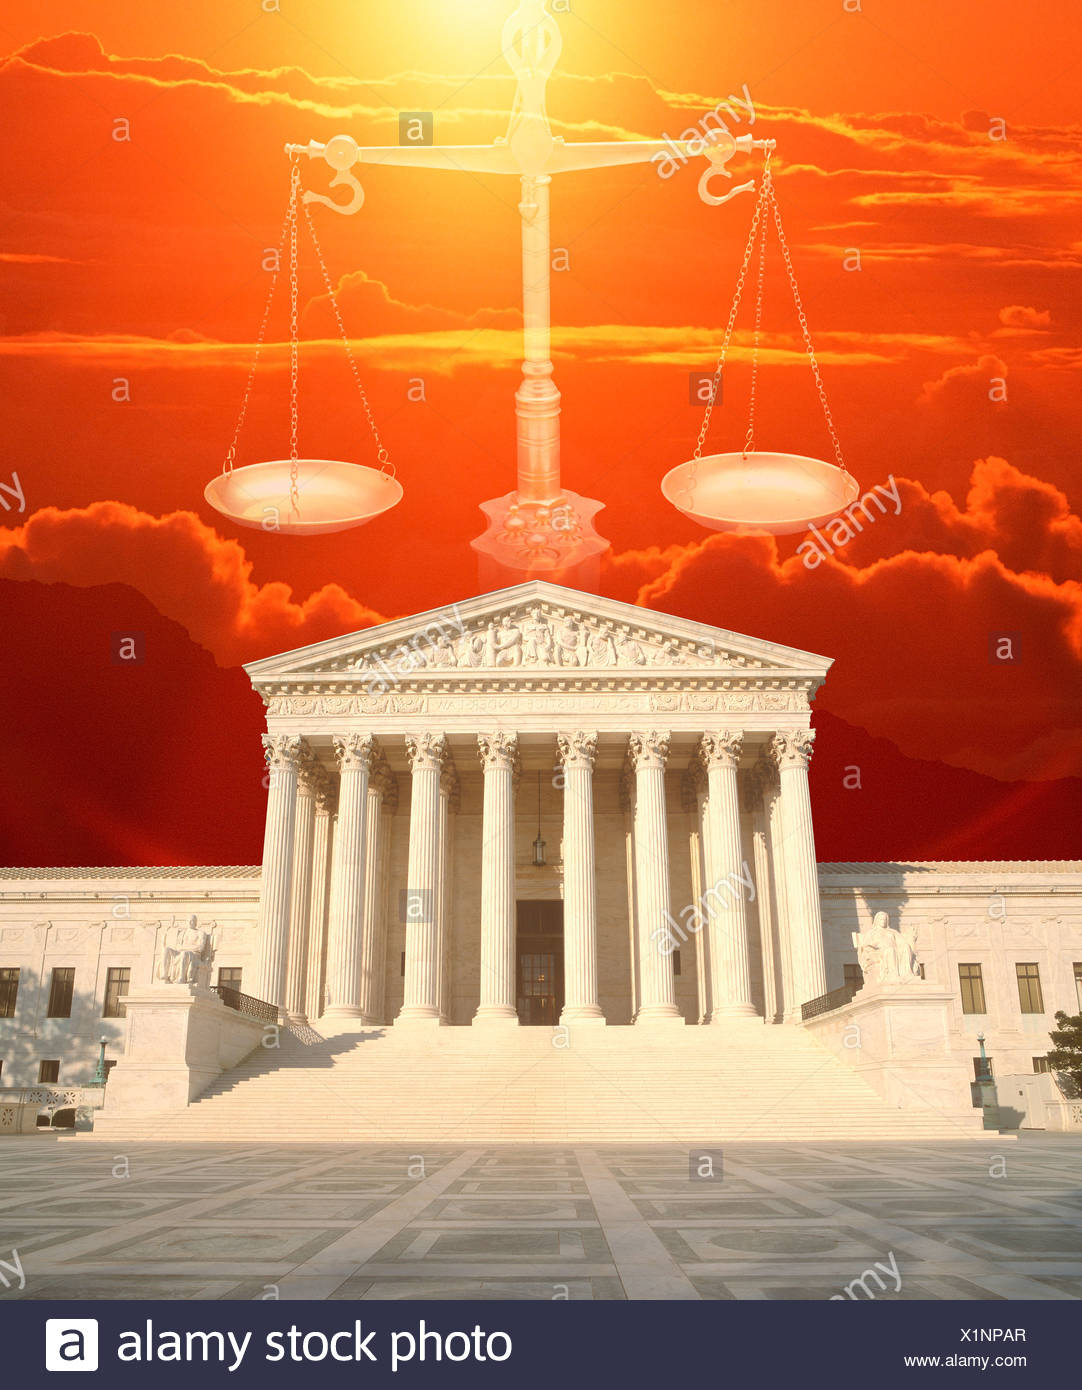 Composite image of the U.S. Supreme Court, Scales of Justice and red sky - Stock Image